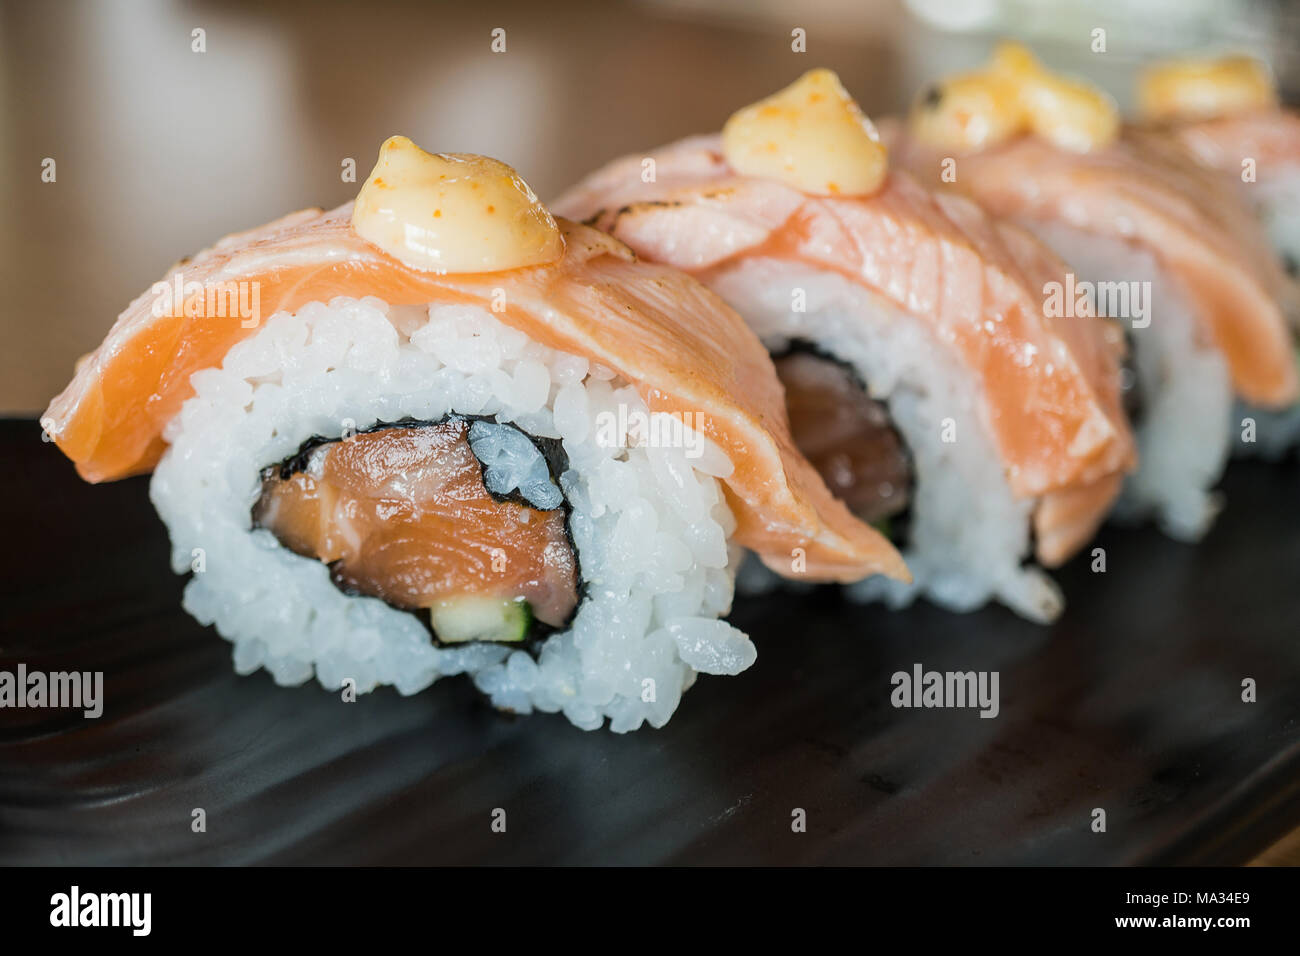 Grilled Salmon Sushi Roll Japanese Food Style On Black Ceramic Dish Stock Photo Alamy